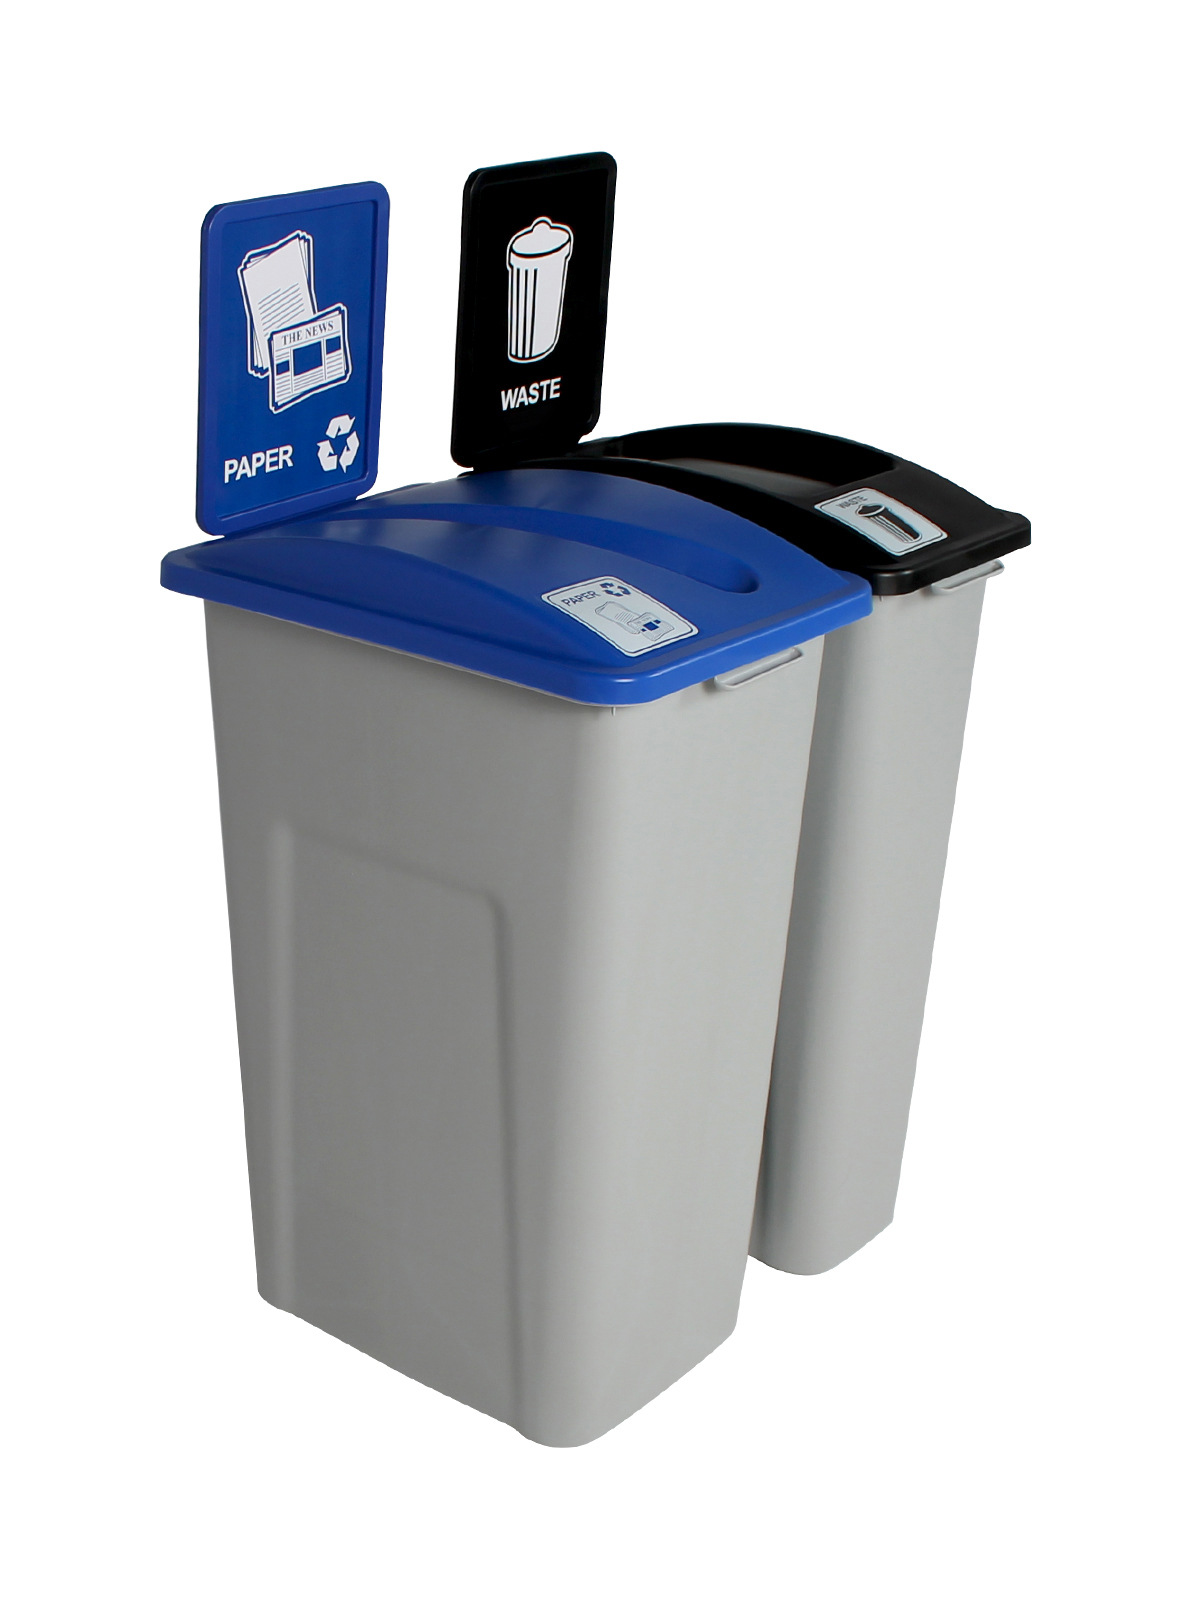 WASTE WATCHER XL - Double - Paper-Waste - Slot-Full - Grey-Blue-Black